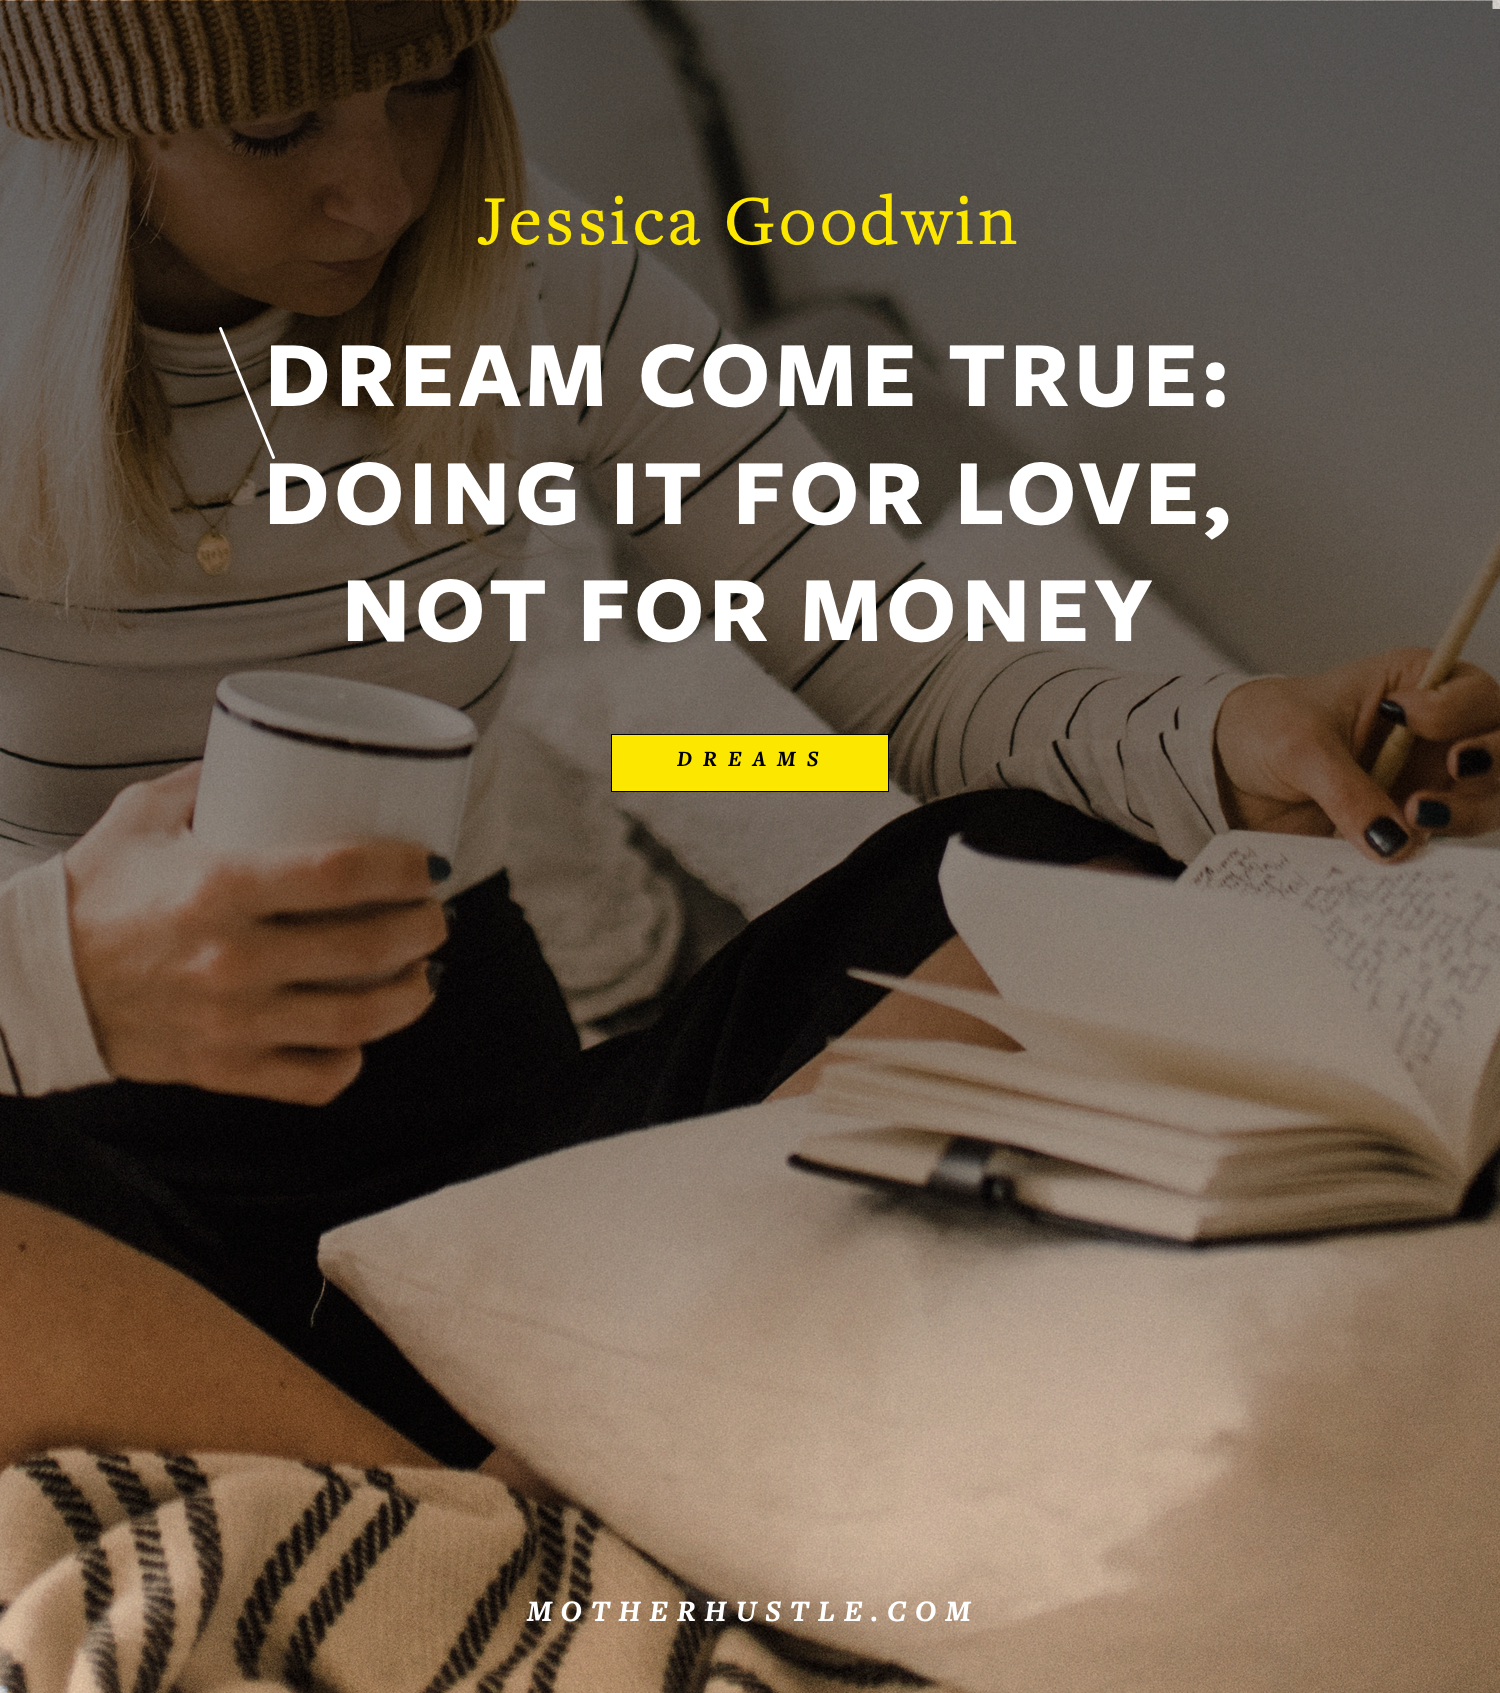 Dream come true- Doing it for love, not for money… - by Jessica Goodwin for MotherHustle